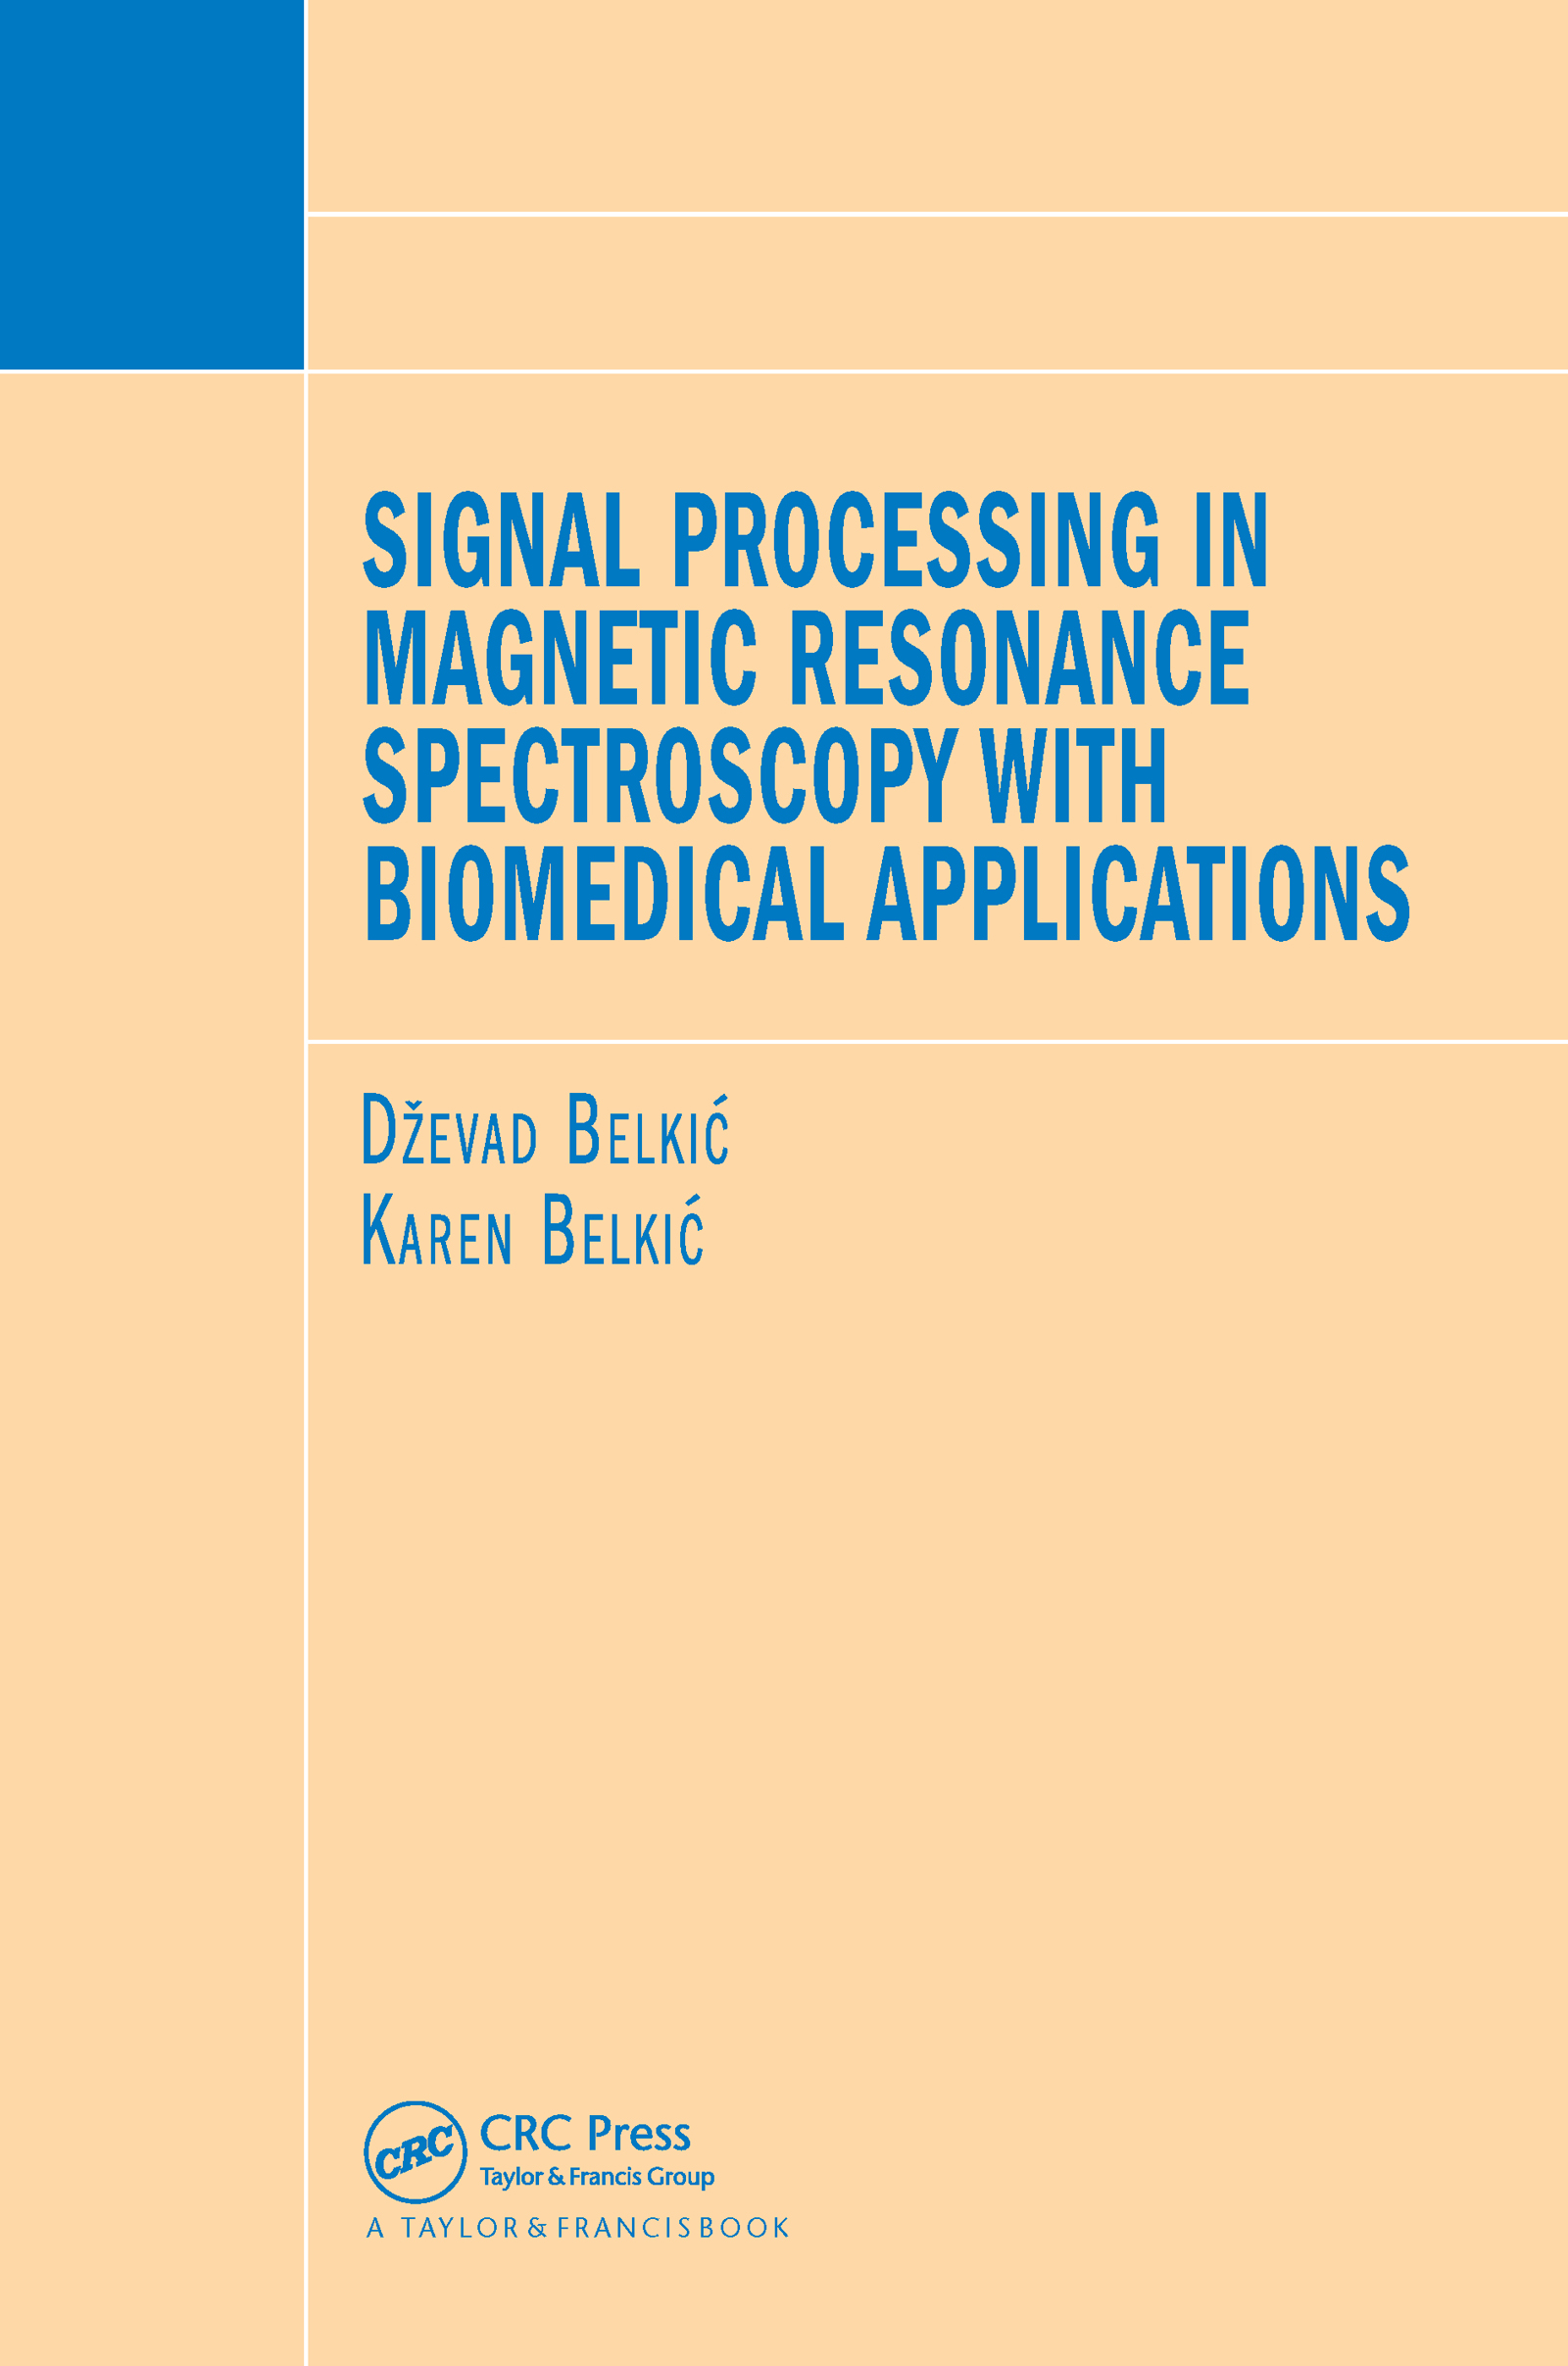 Signal Processing in Magnetic Resonance Spectroscopy with Biomedical Applications: 1st Edition (Hardback) book cover